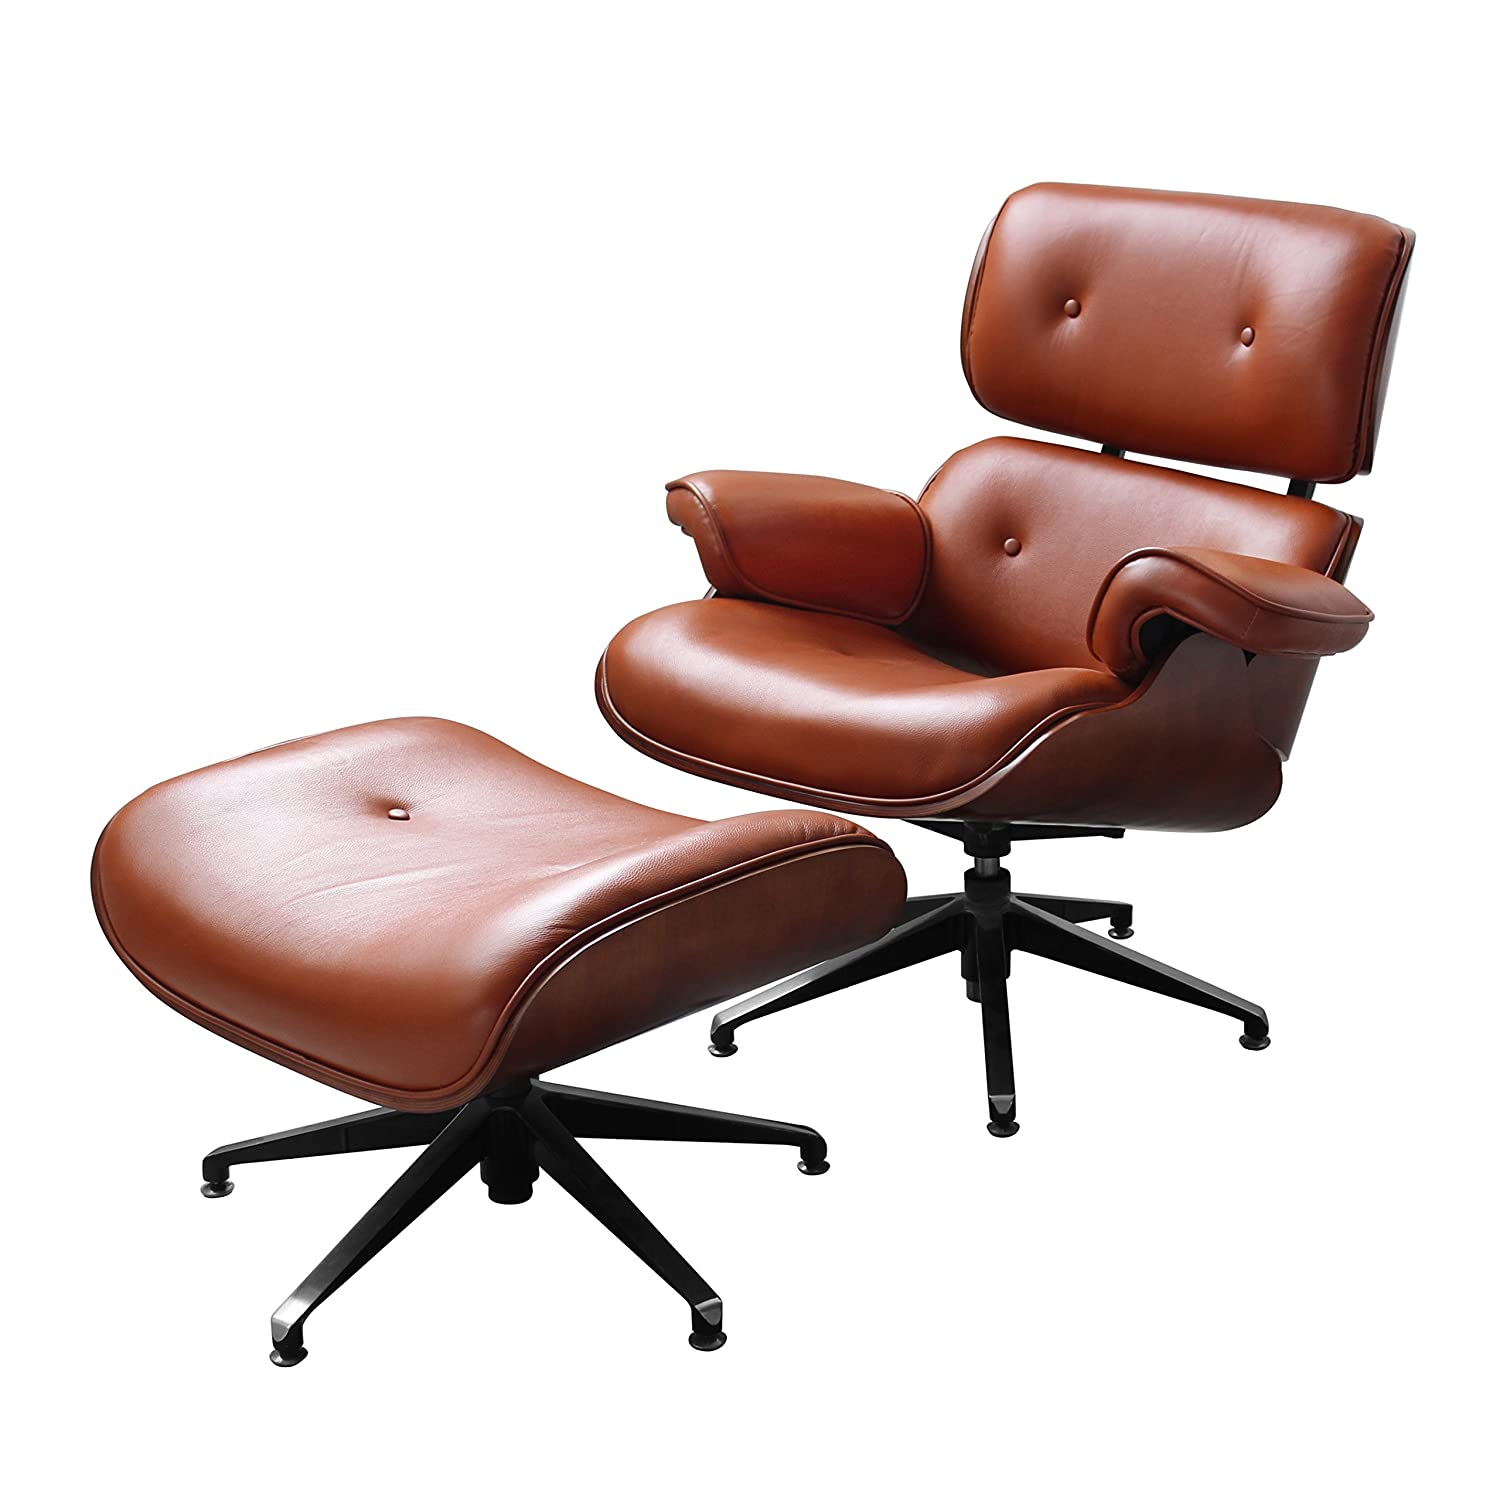 Premier Housewares Leather Swivel Chair and Footstool Tan